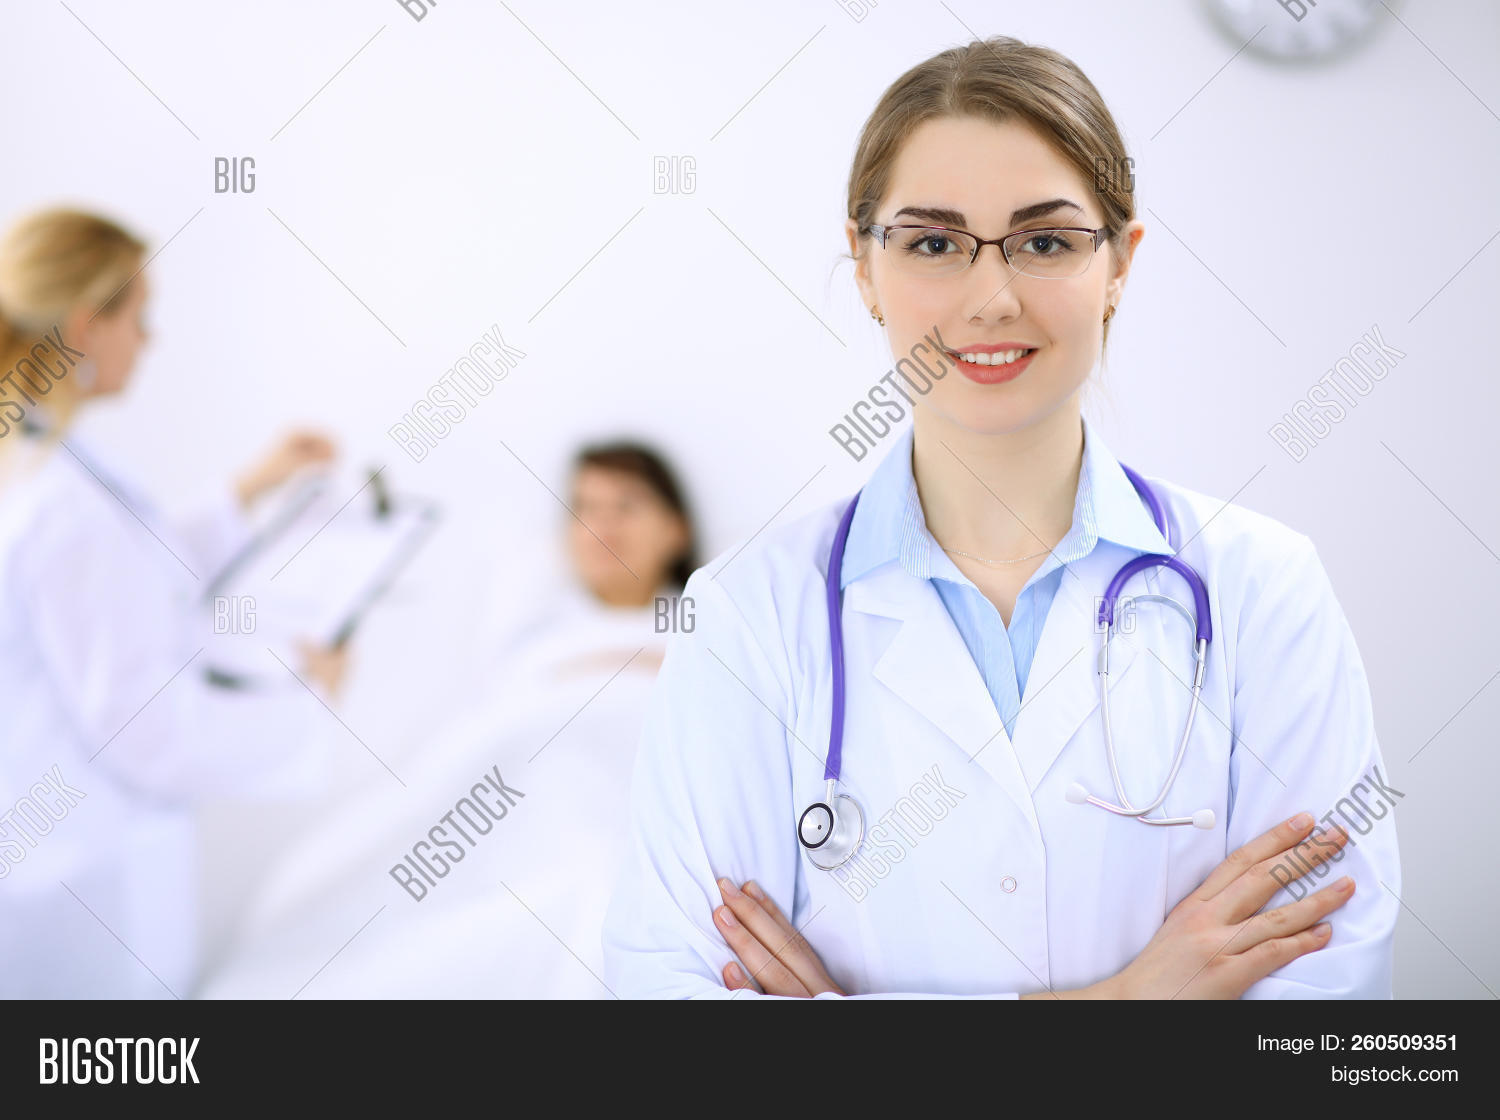 appointment,attractive,cabinet,cardiologist,care,clinic,clipboard,diagnosis,diagnostics,disease,doctor,emergency,examination,family,female,health,horizontal,hospital,illness,listening,looking,mature,medic,medical,medicare,paramedic,patient,pediatrician,people,person,physician,physiotherapist,practitioner,prescription,problem,professional,senior,smiling,specialist,staff,stethoscope,talking,uniform,visit,white,woman,working,writing